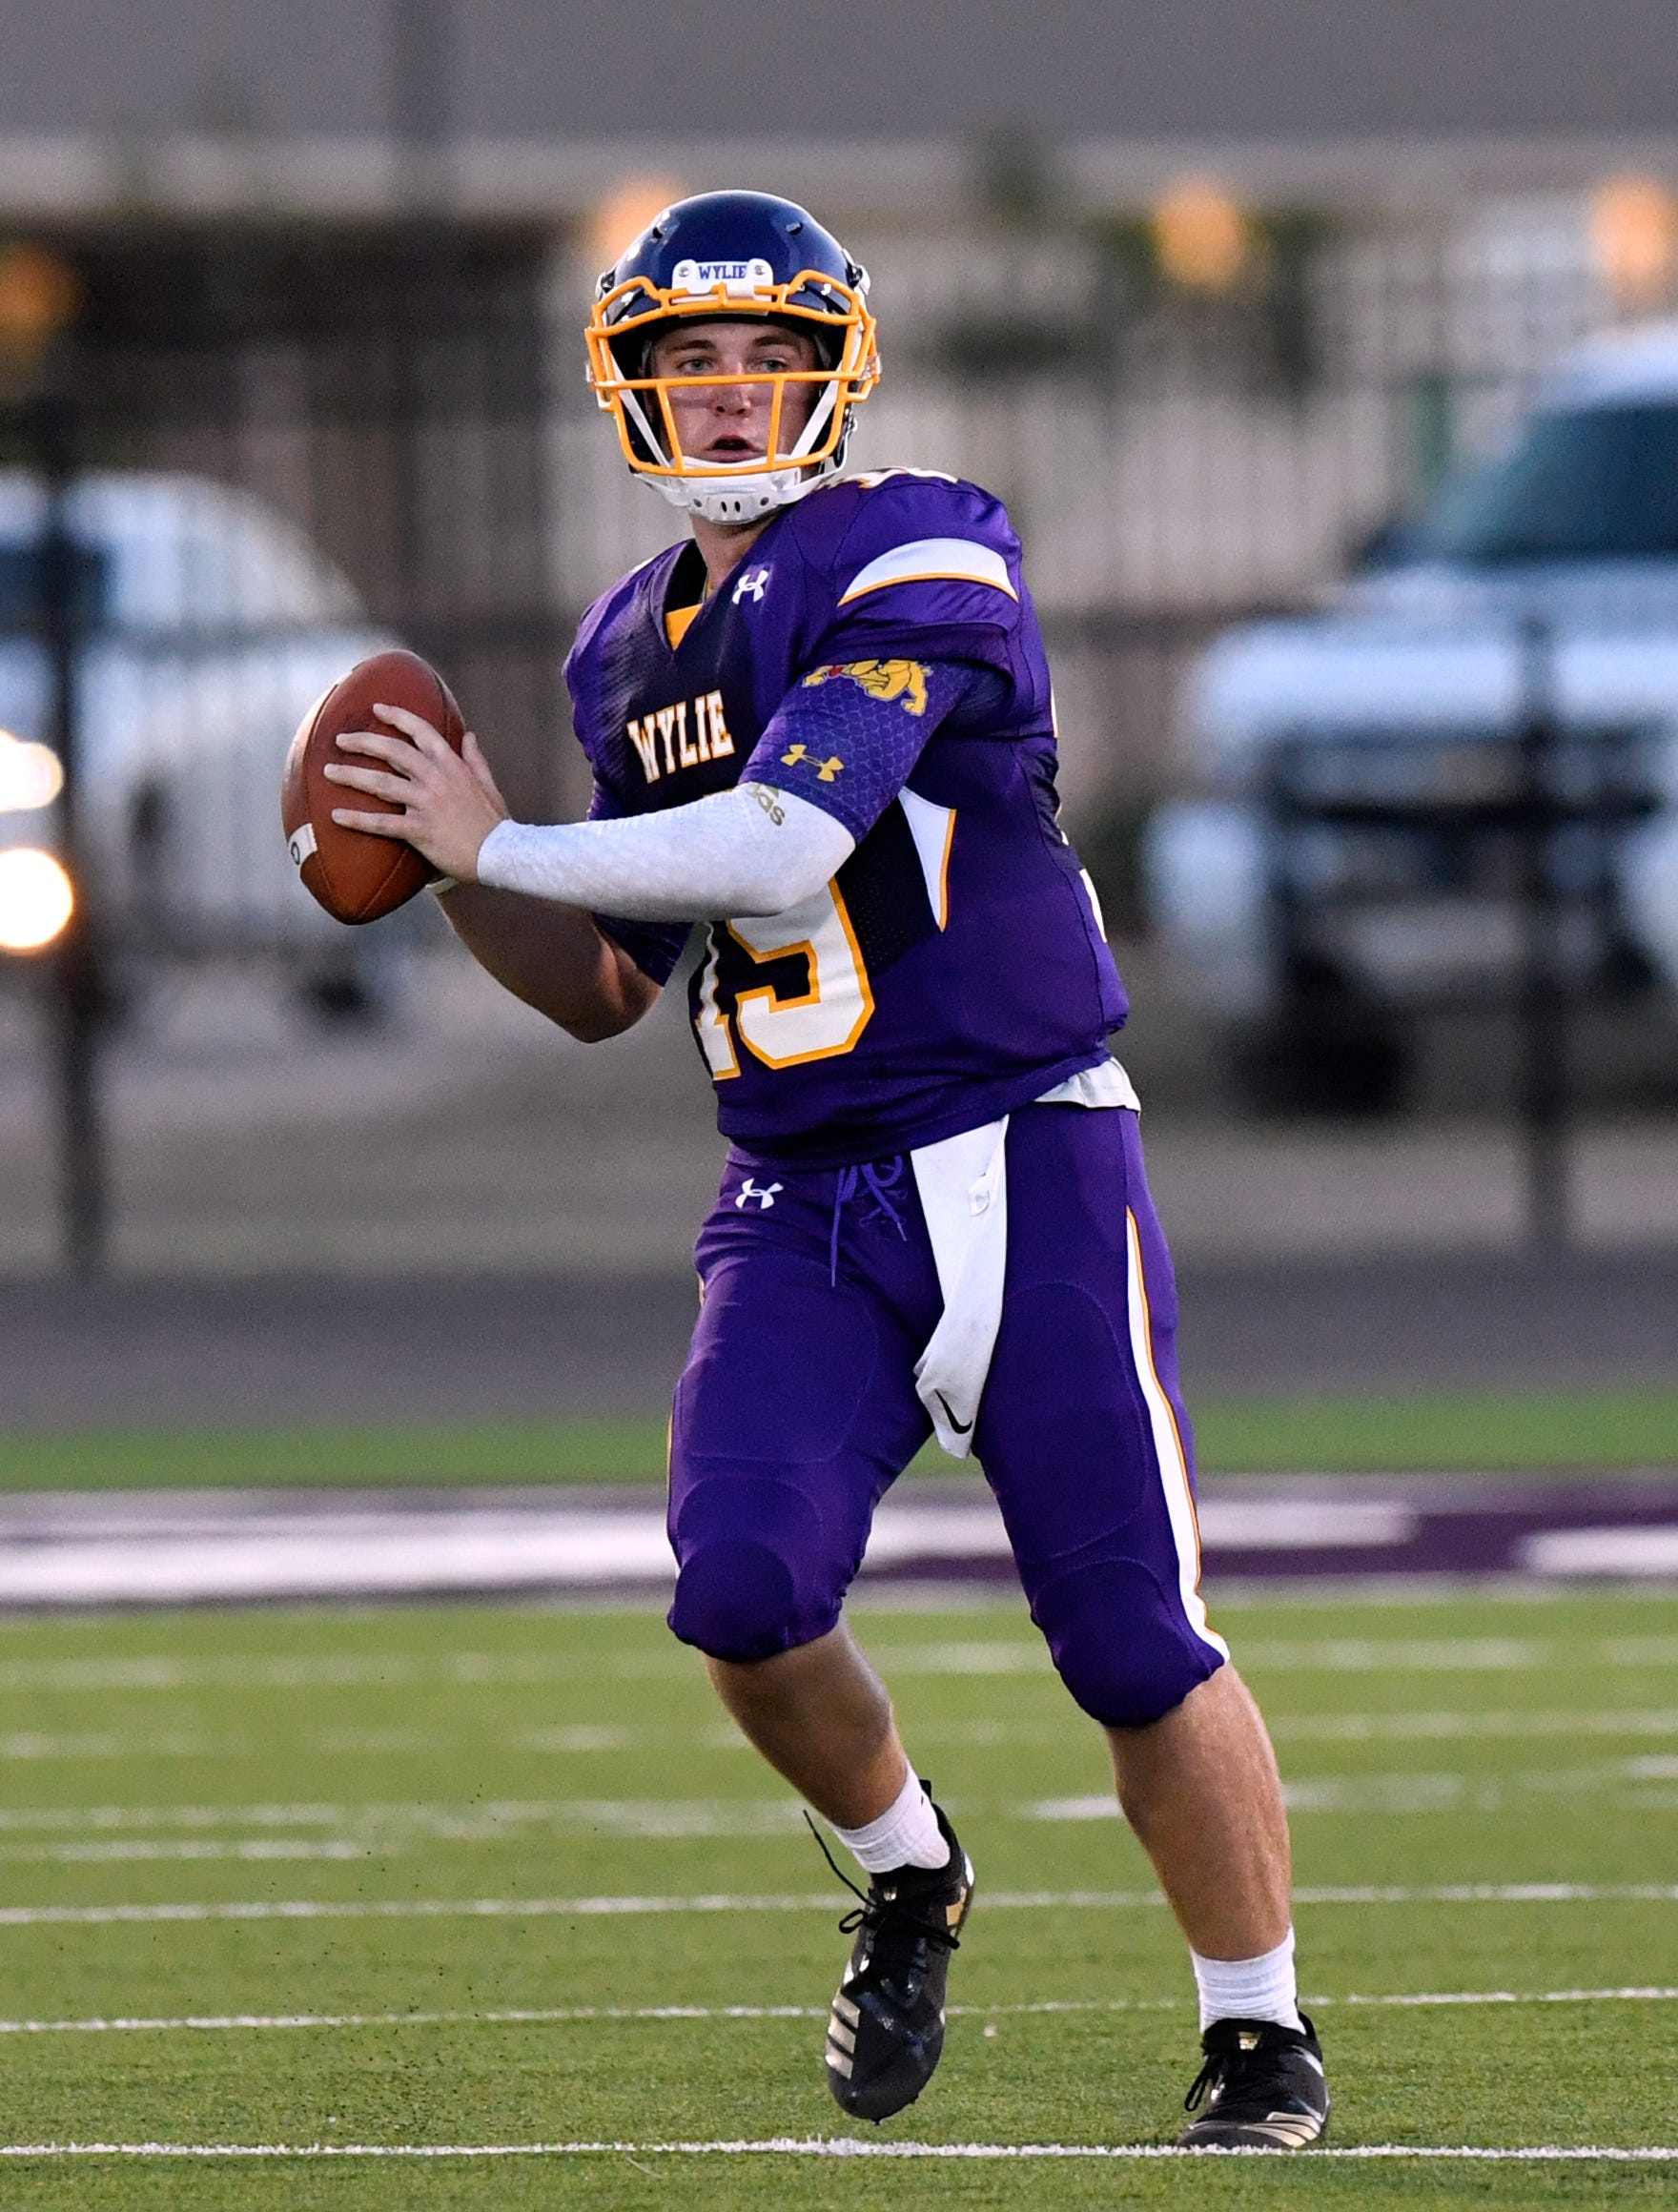 Bulldogs quarterback Harrison Atwood looks for a receiver during Wylie's game against Georgetown.